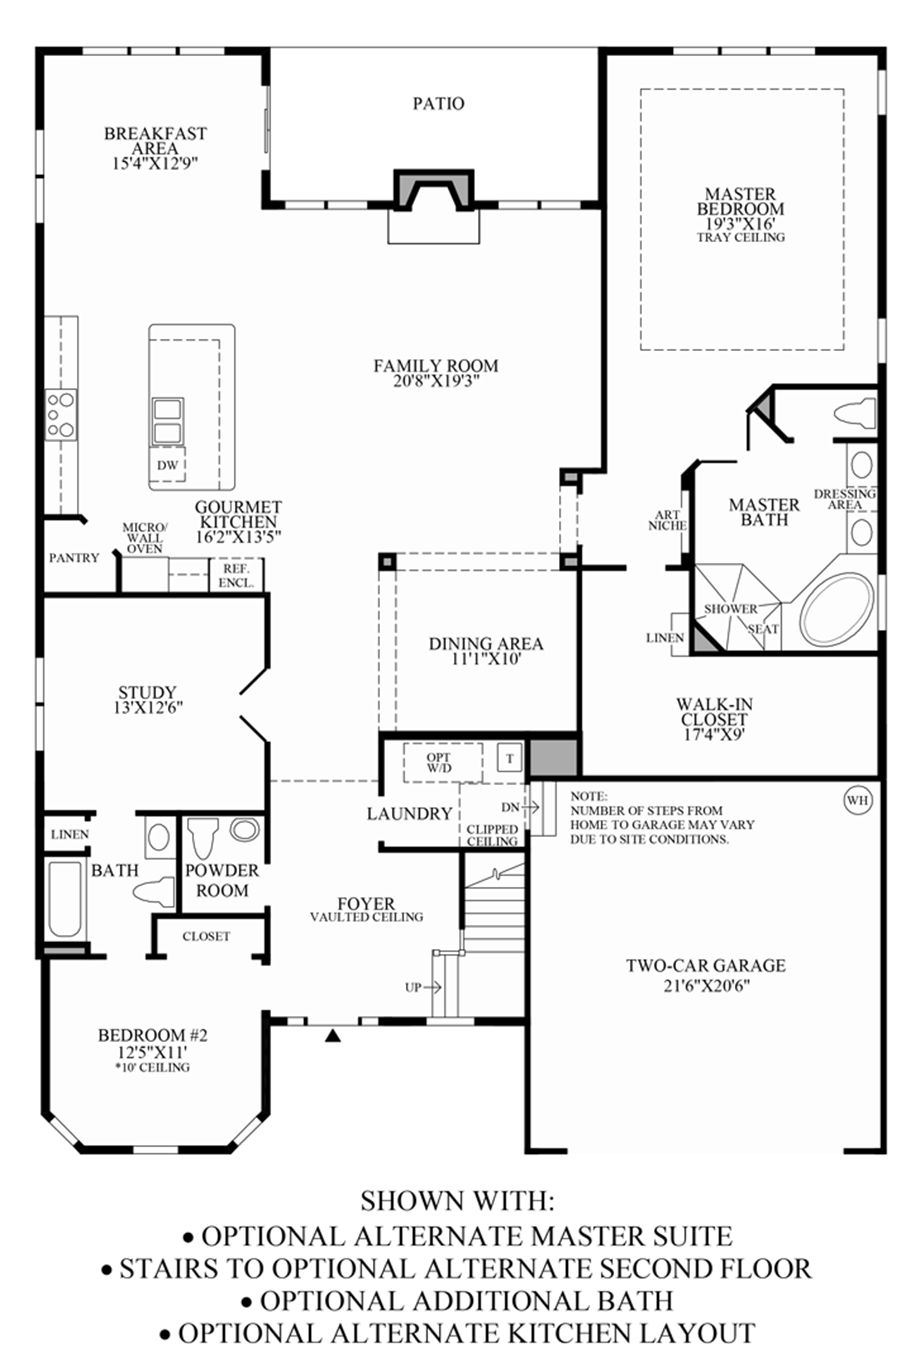 1st Floor Options Floor Plan